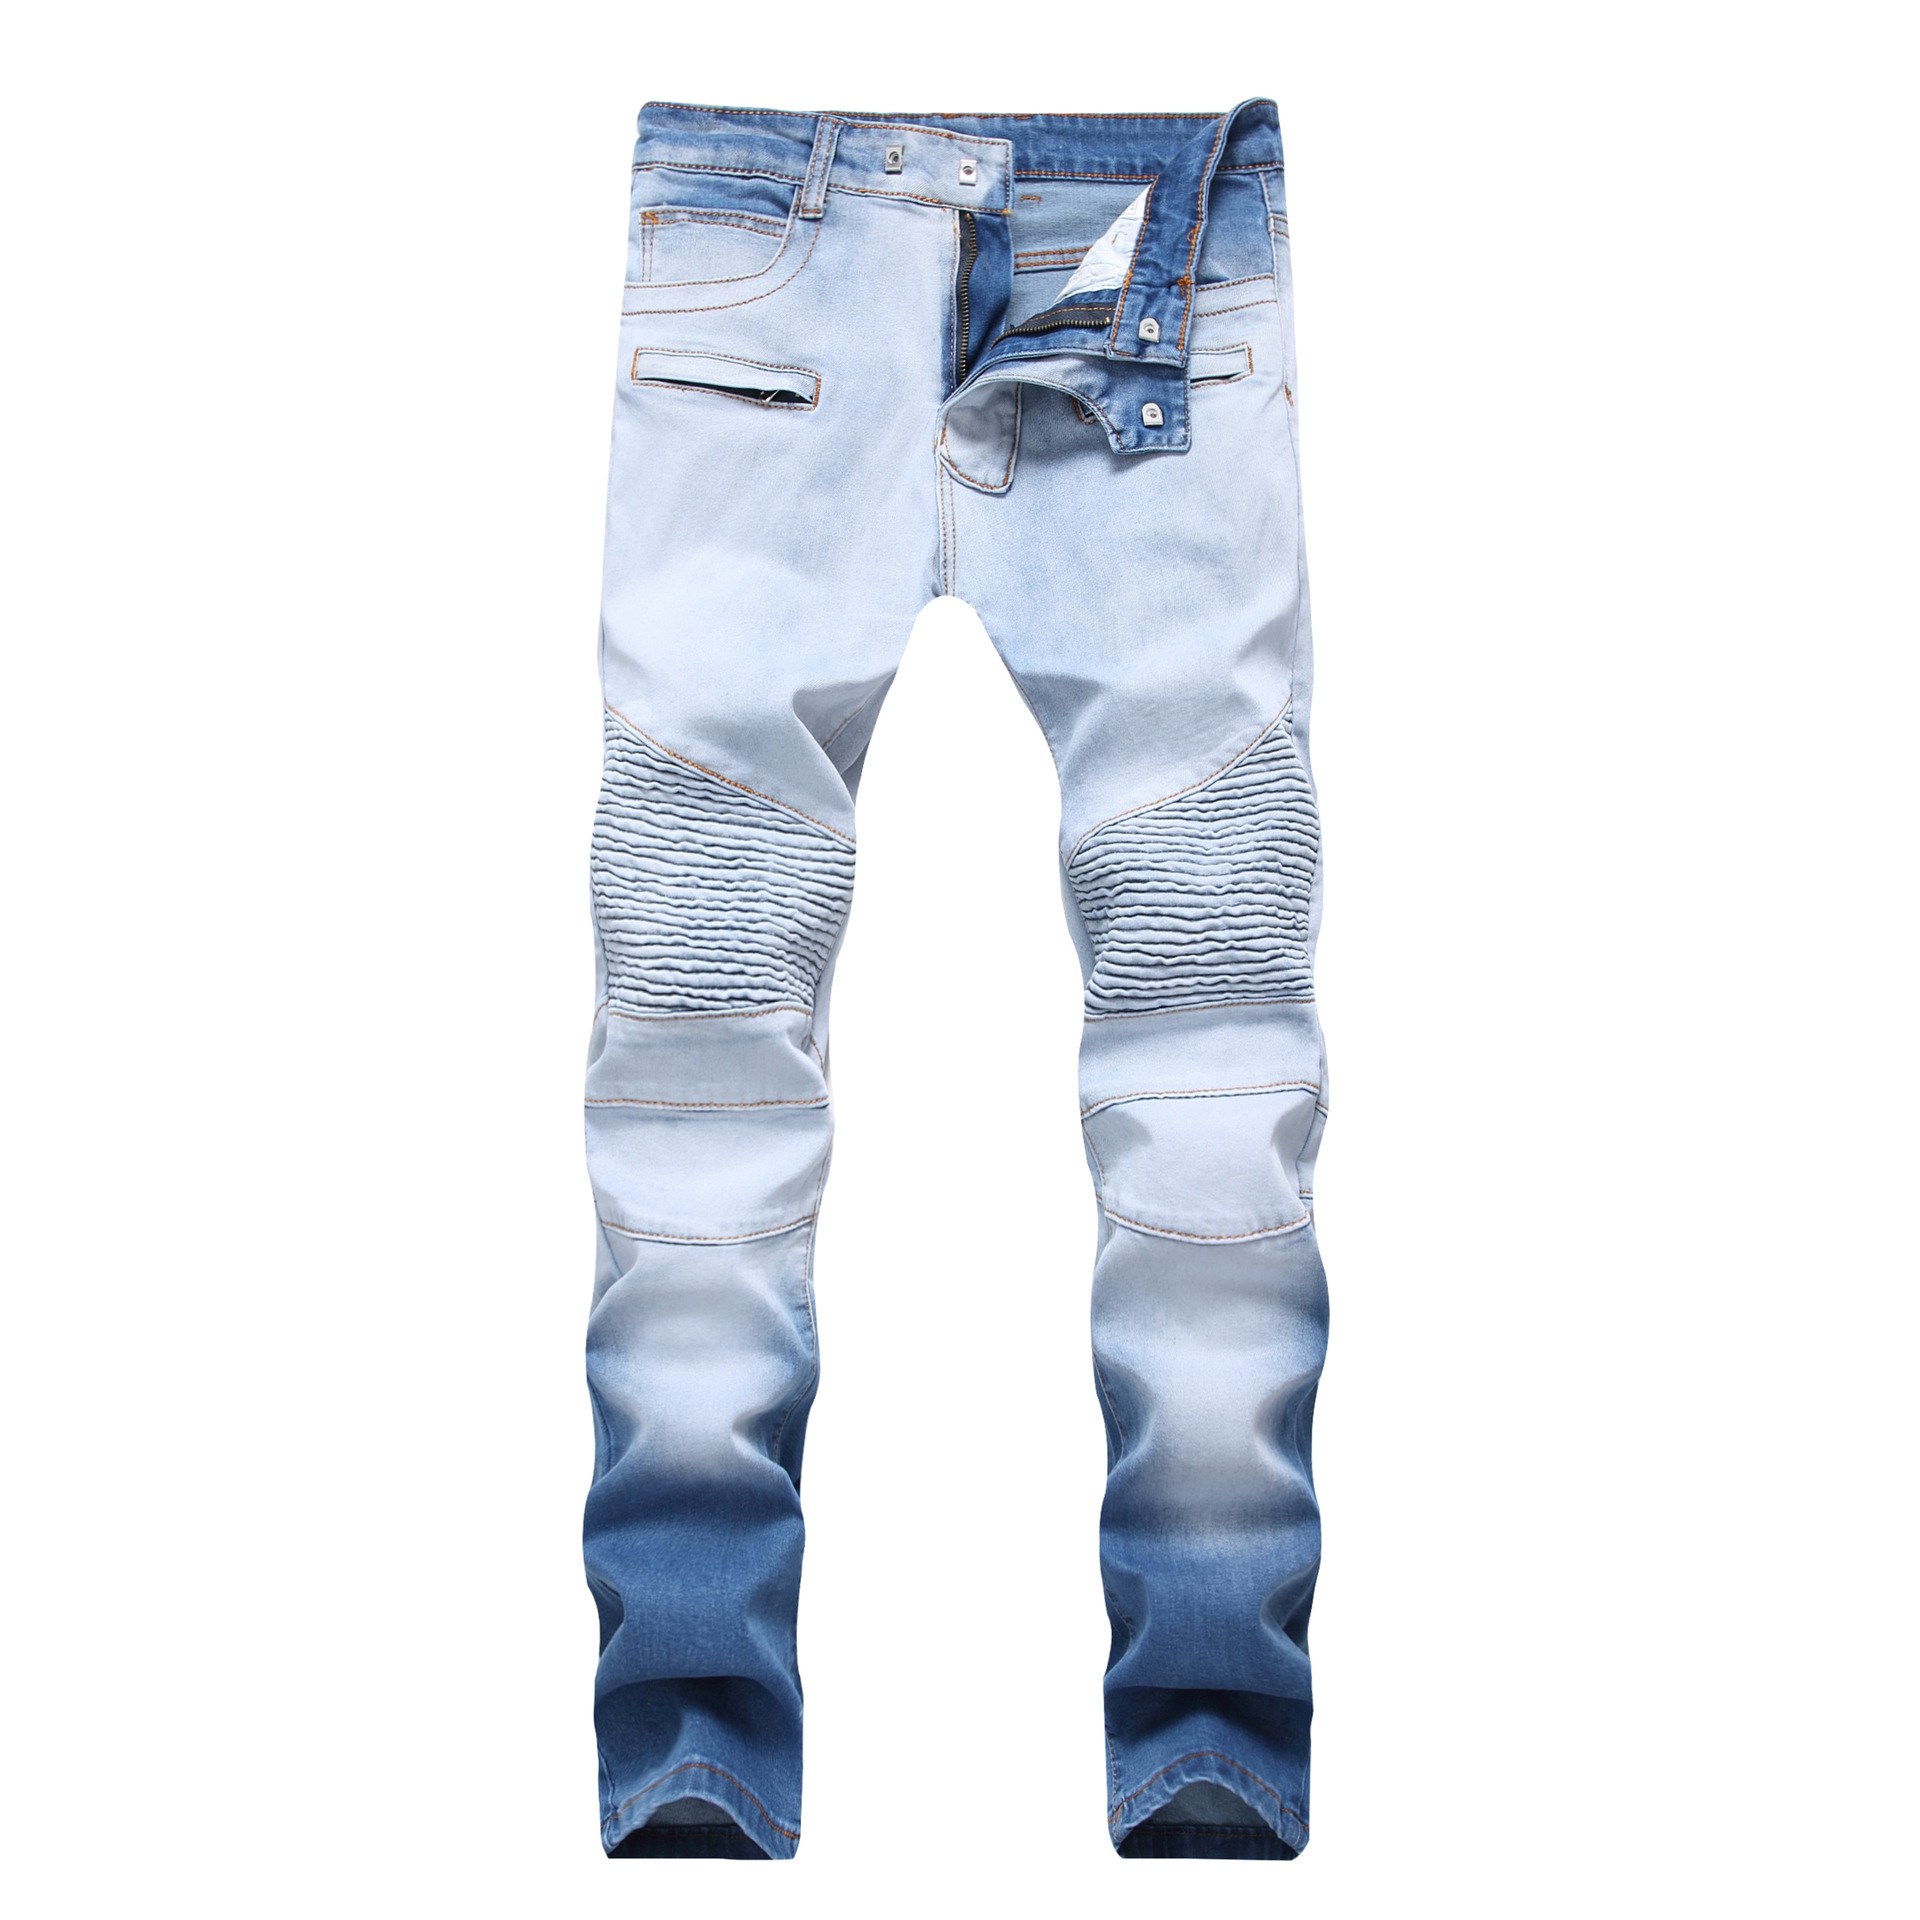 New Style Men'S Wear North America High Street Slim Fit Elasticity On Color Changing Jeans Da Tiao Zipper Double Color Faded Tro